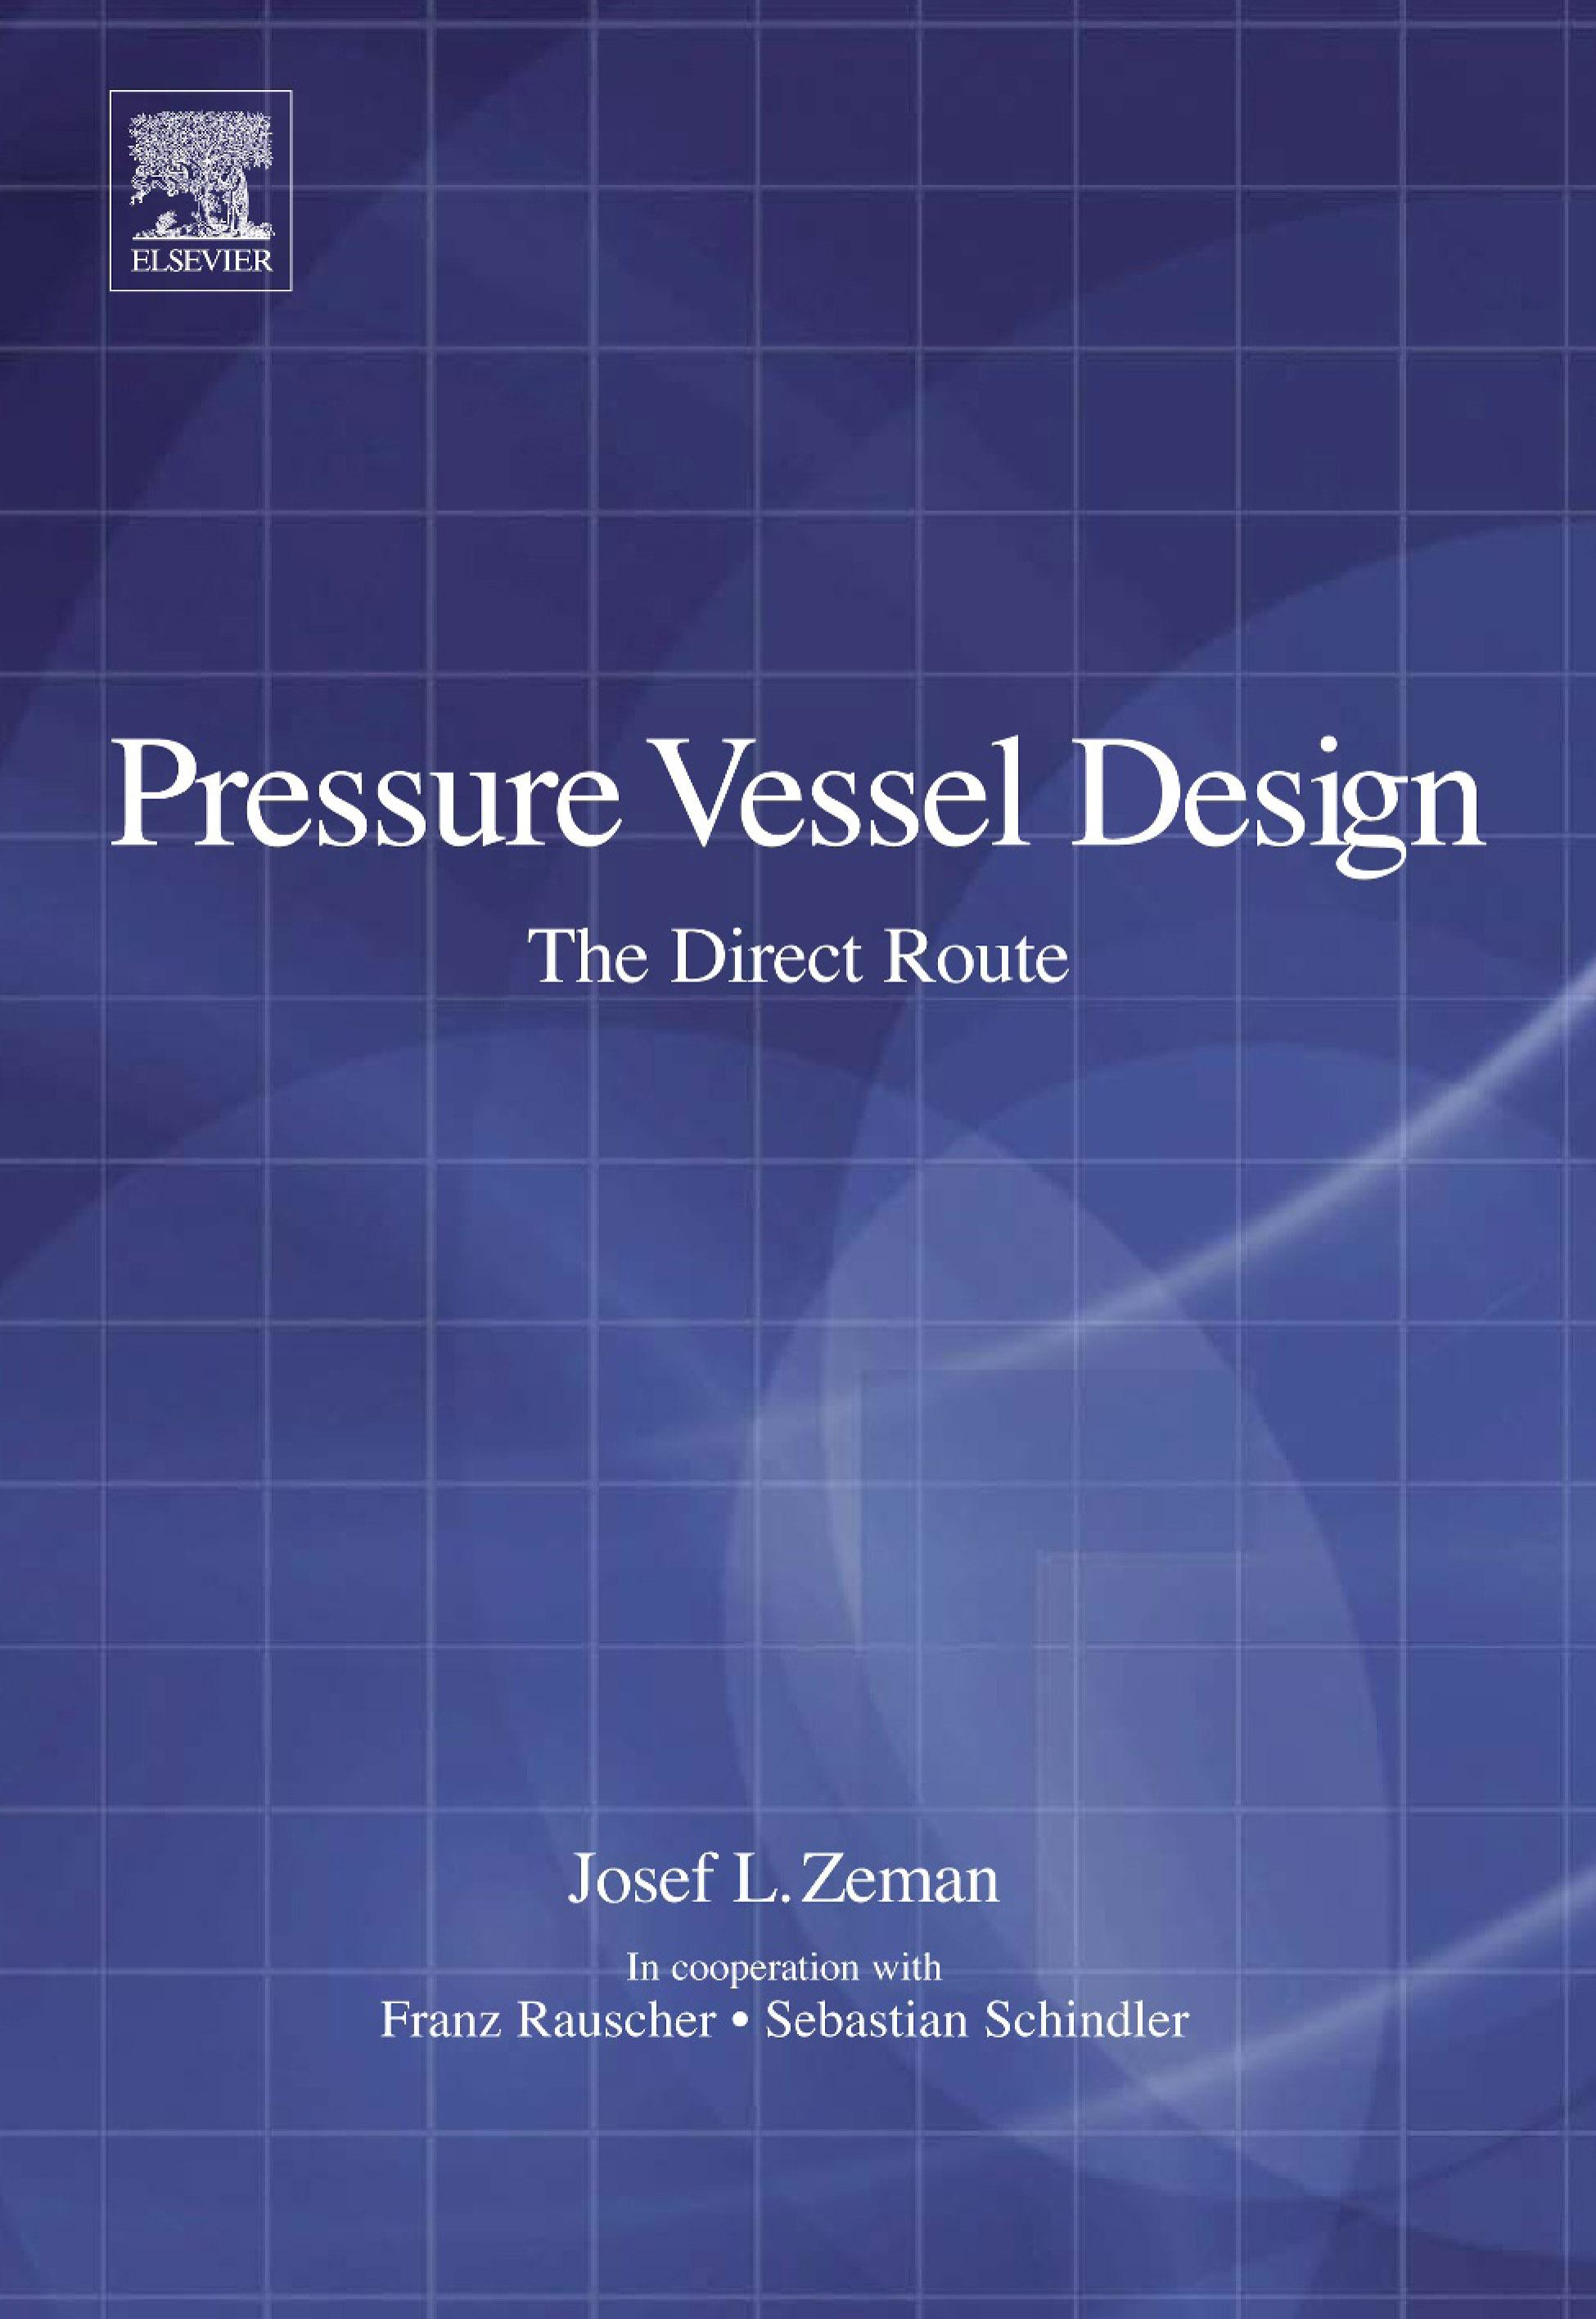 Pressure Vessel Design: The Direct Route: The Direct Route